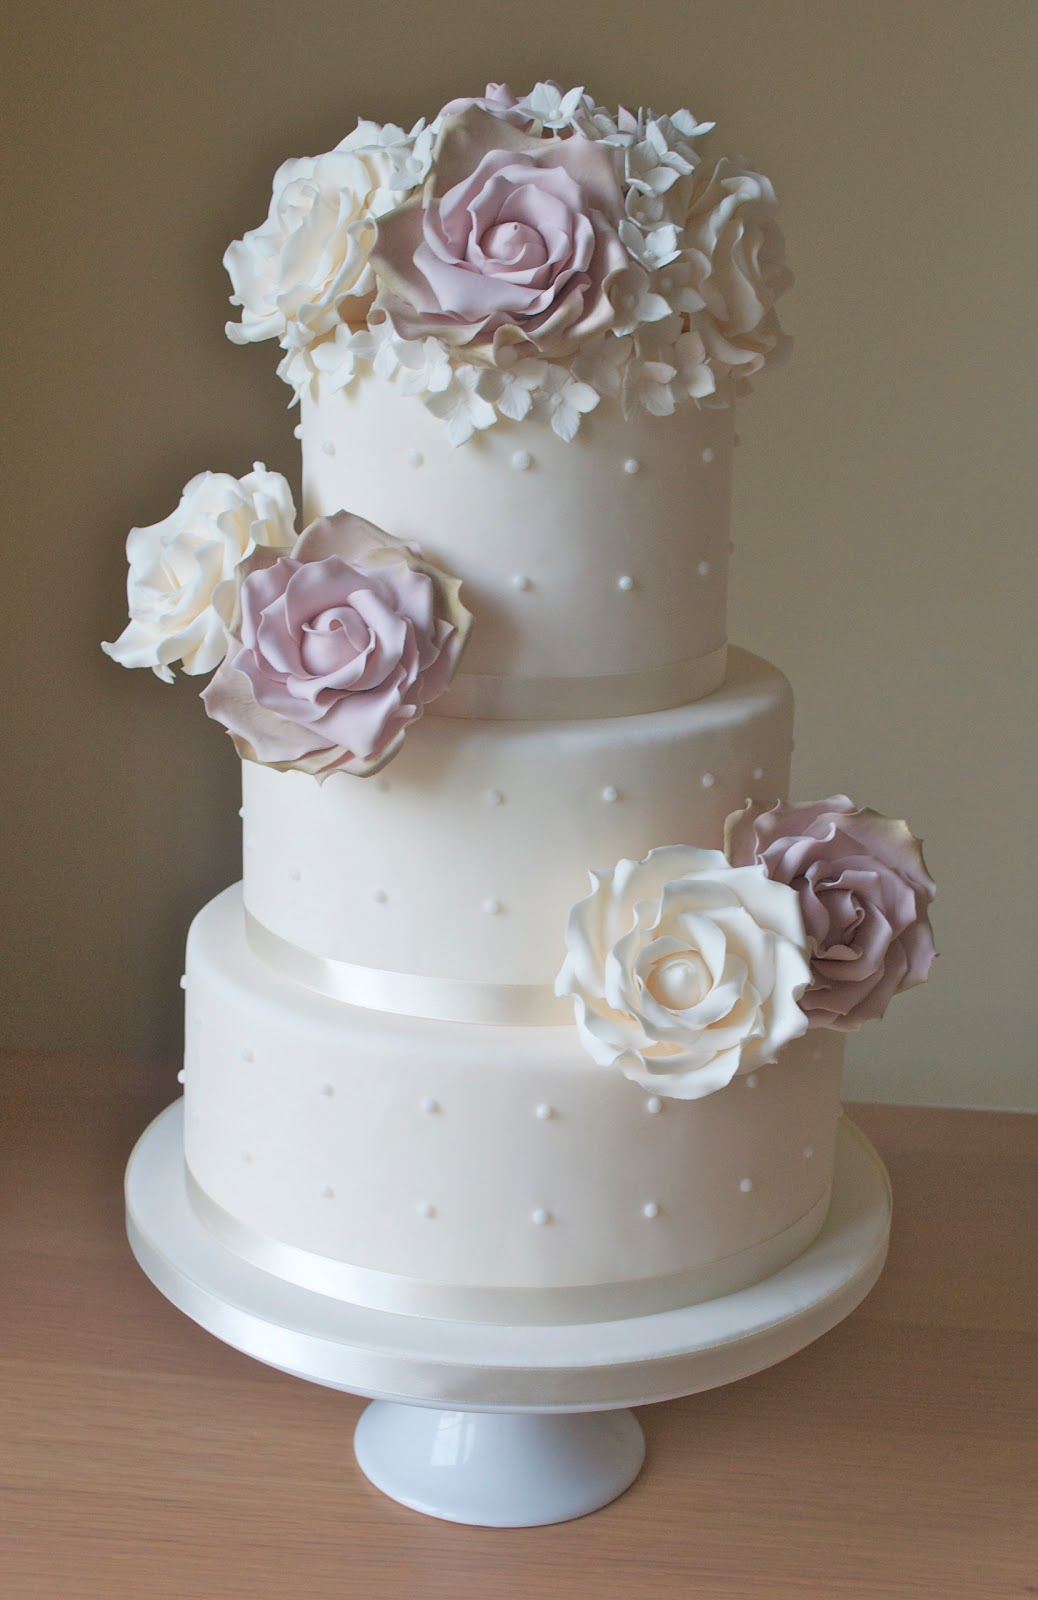 Sugar Ruffles Elegant Wedding Cakes Barrow In Furness And The Lake District